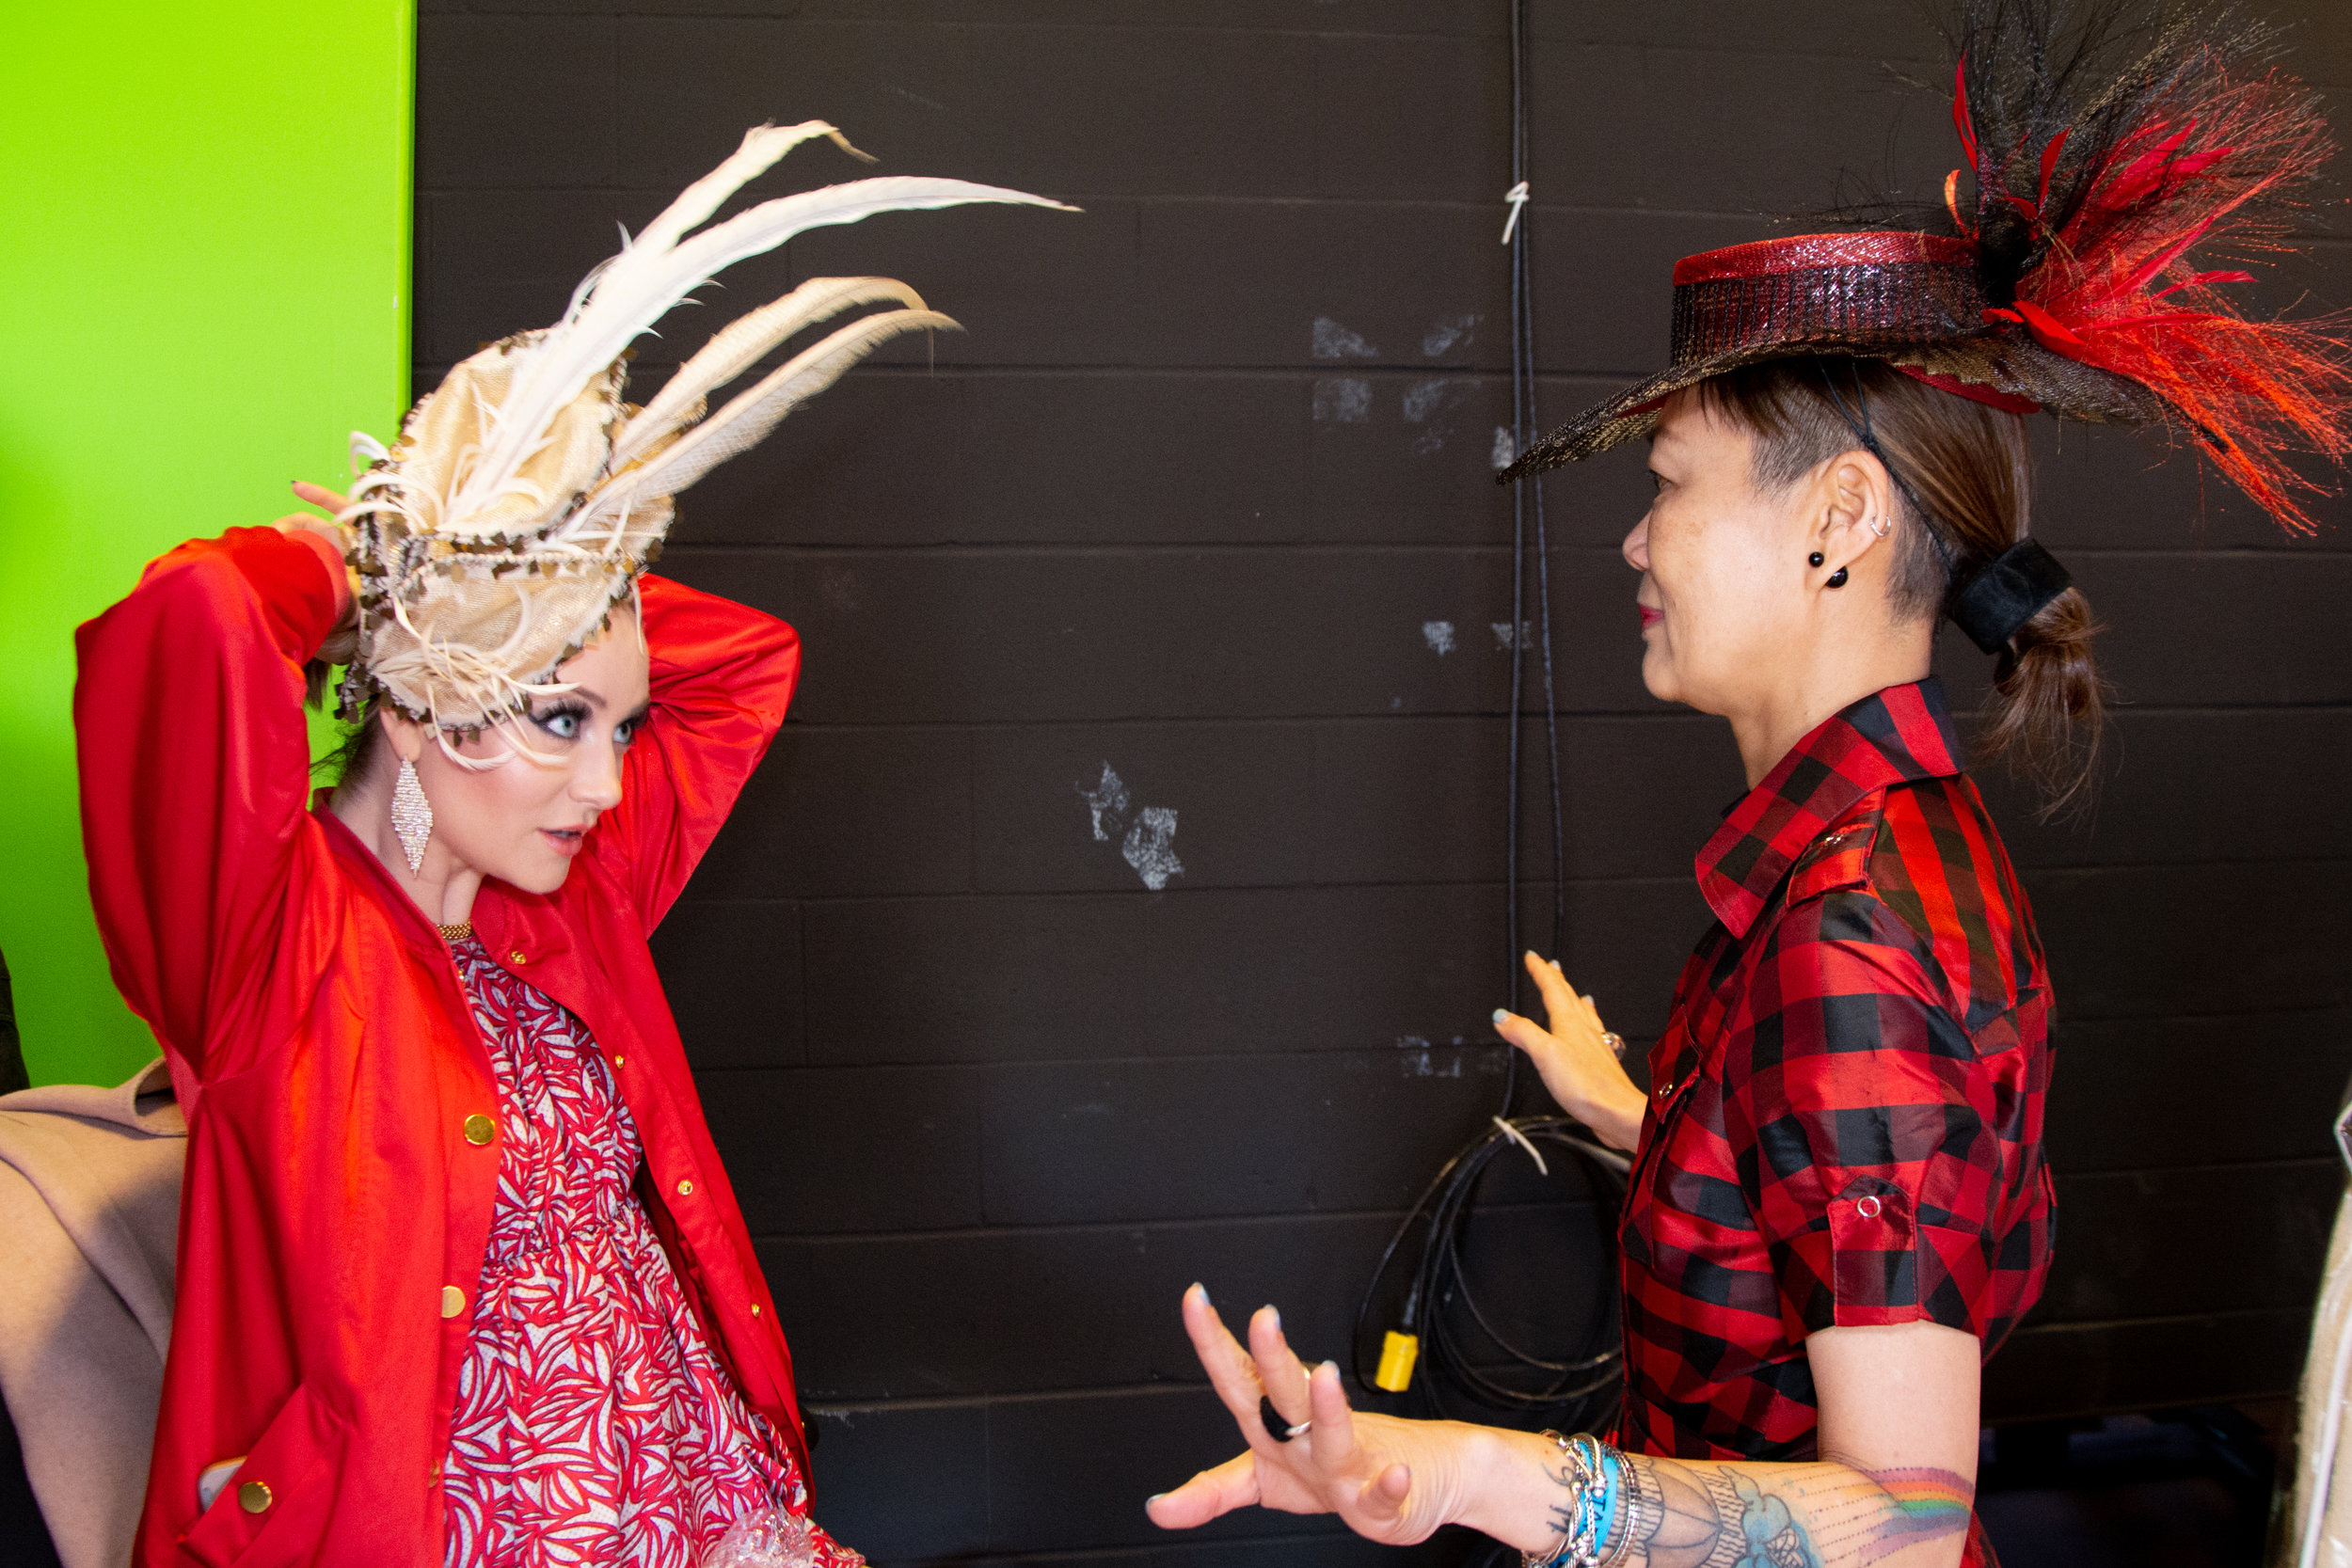 Jay Cheng from Jaycow Millinery for Greenwood Stakes by Jesús Maza_04.jpg